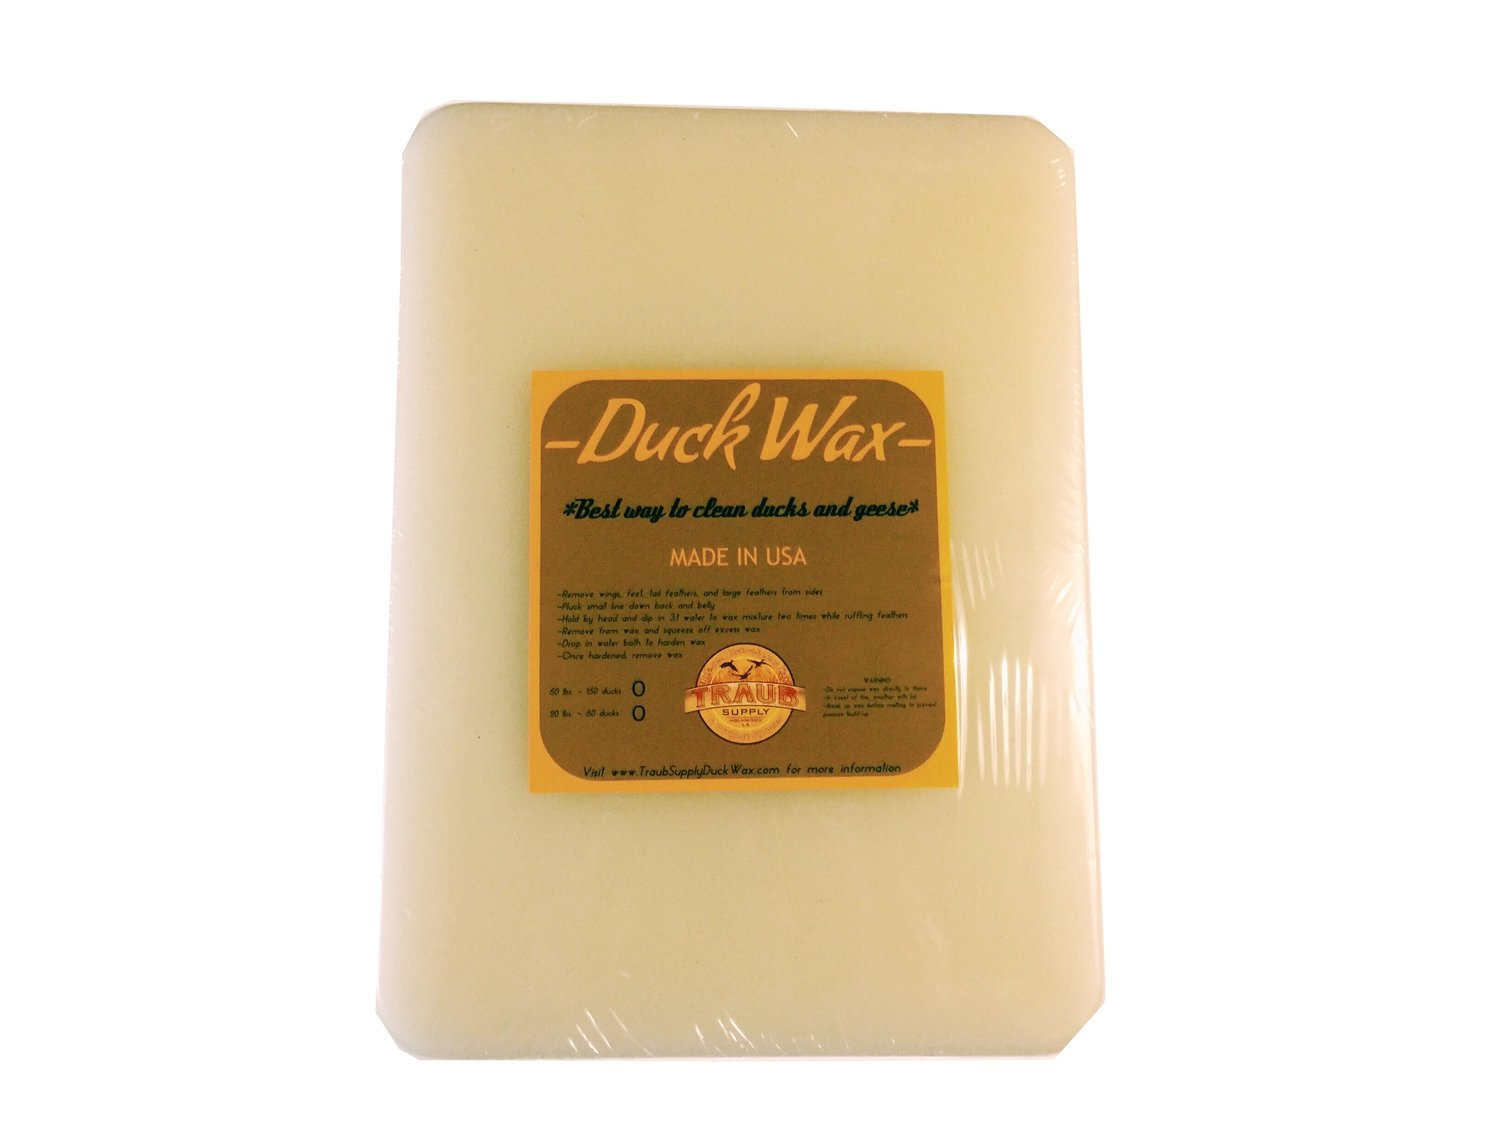 BUY NOW - 1 slab 11 lbs. Wild Duck Wax (CLEANS ABOUT 30 WILD DUCKS) USA ONLY SHIPPING INCLUDED